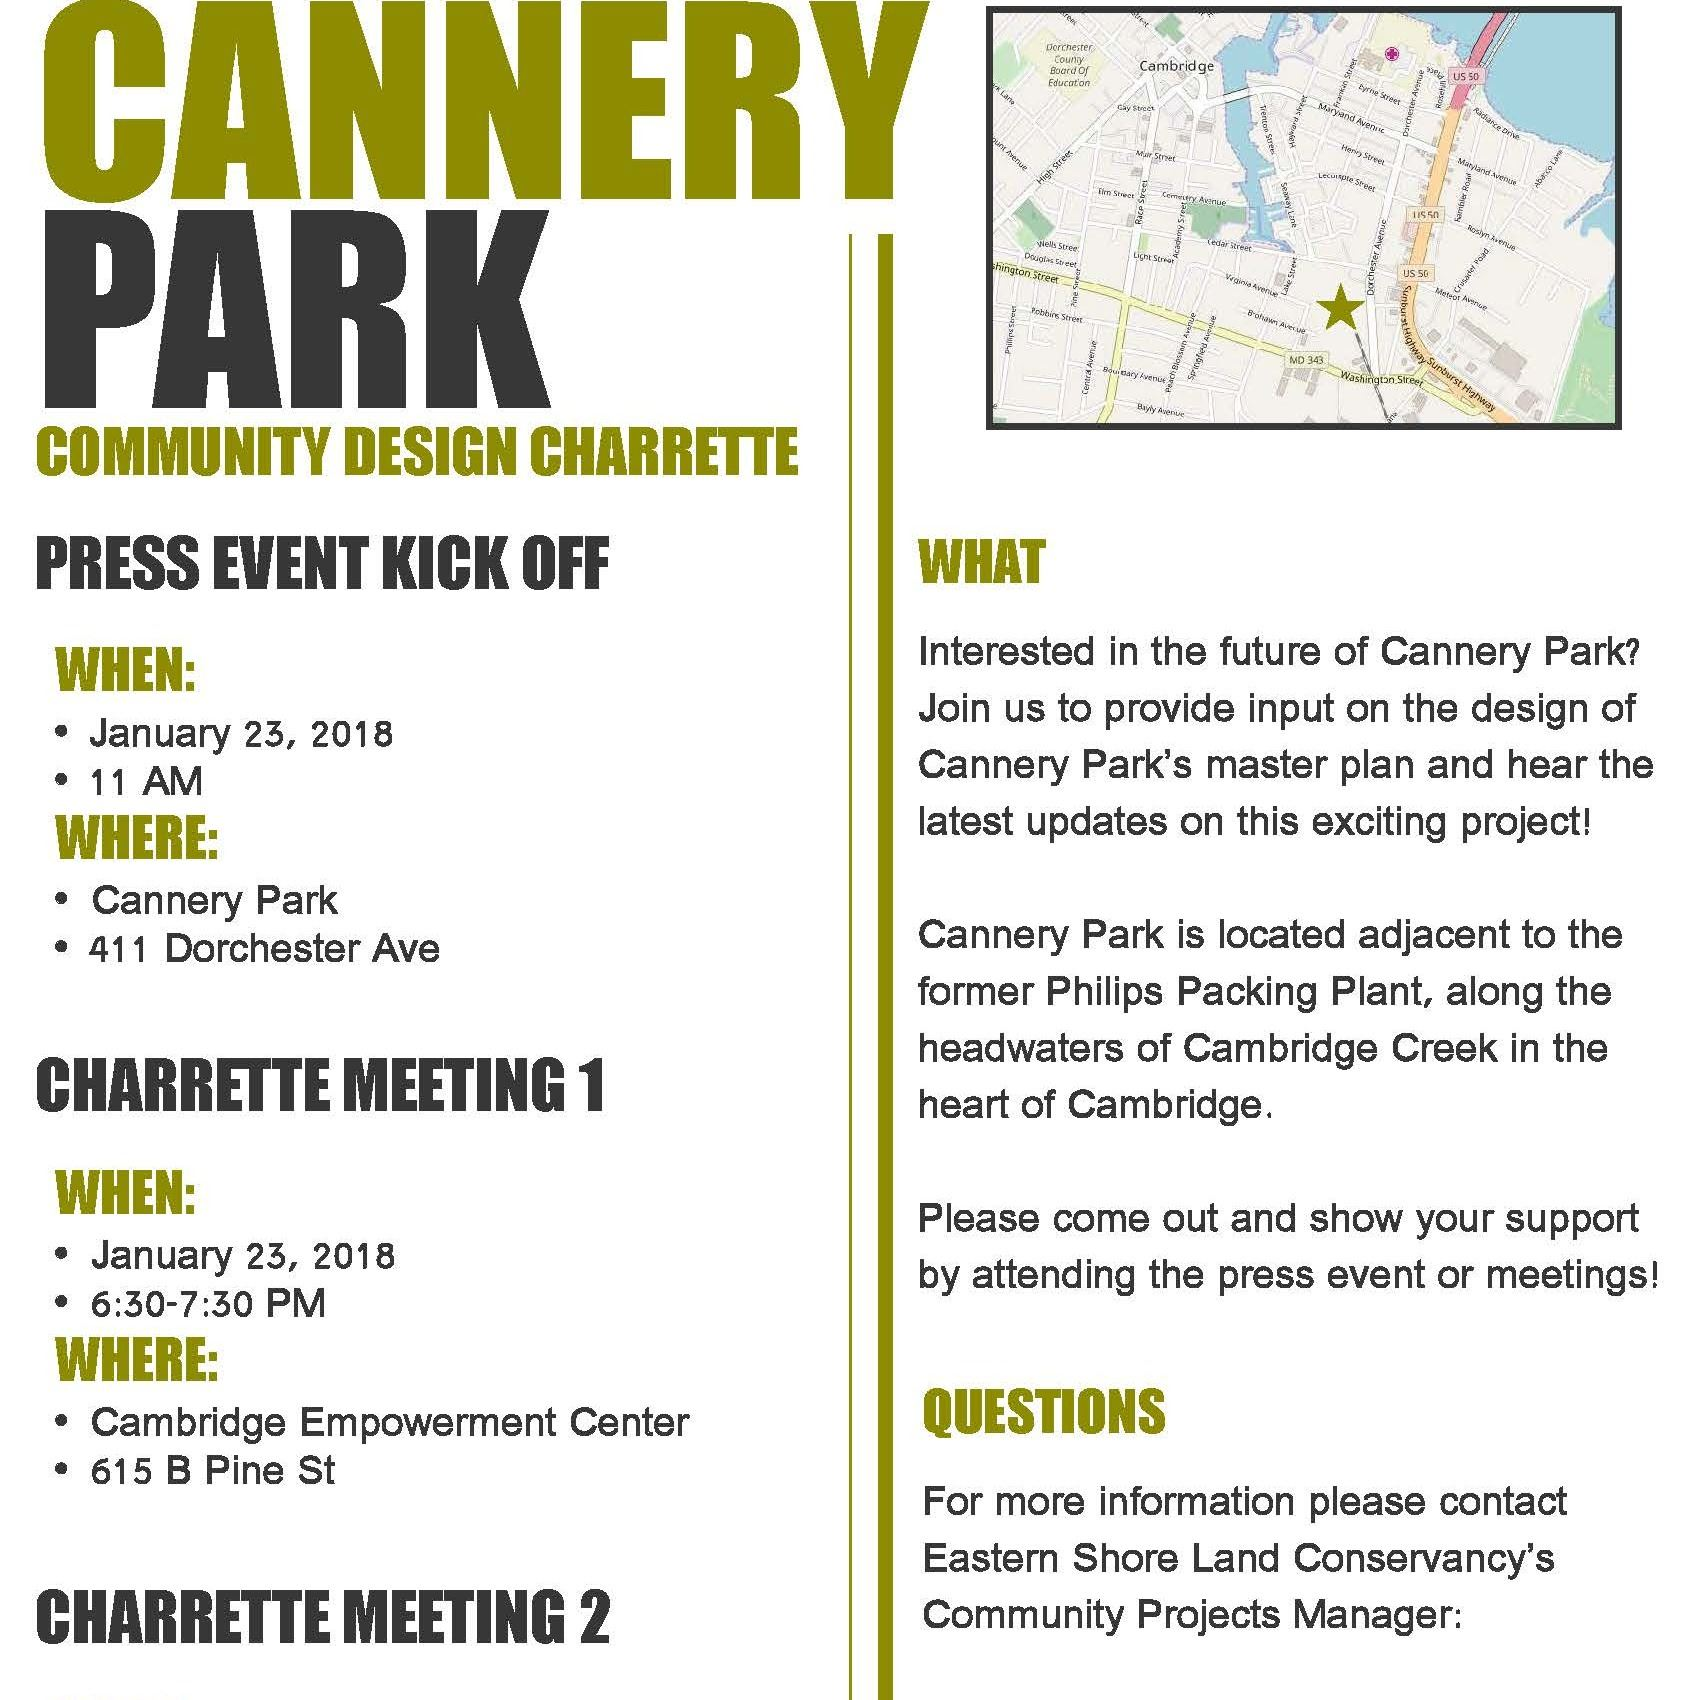 cannery park flyer